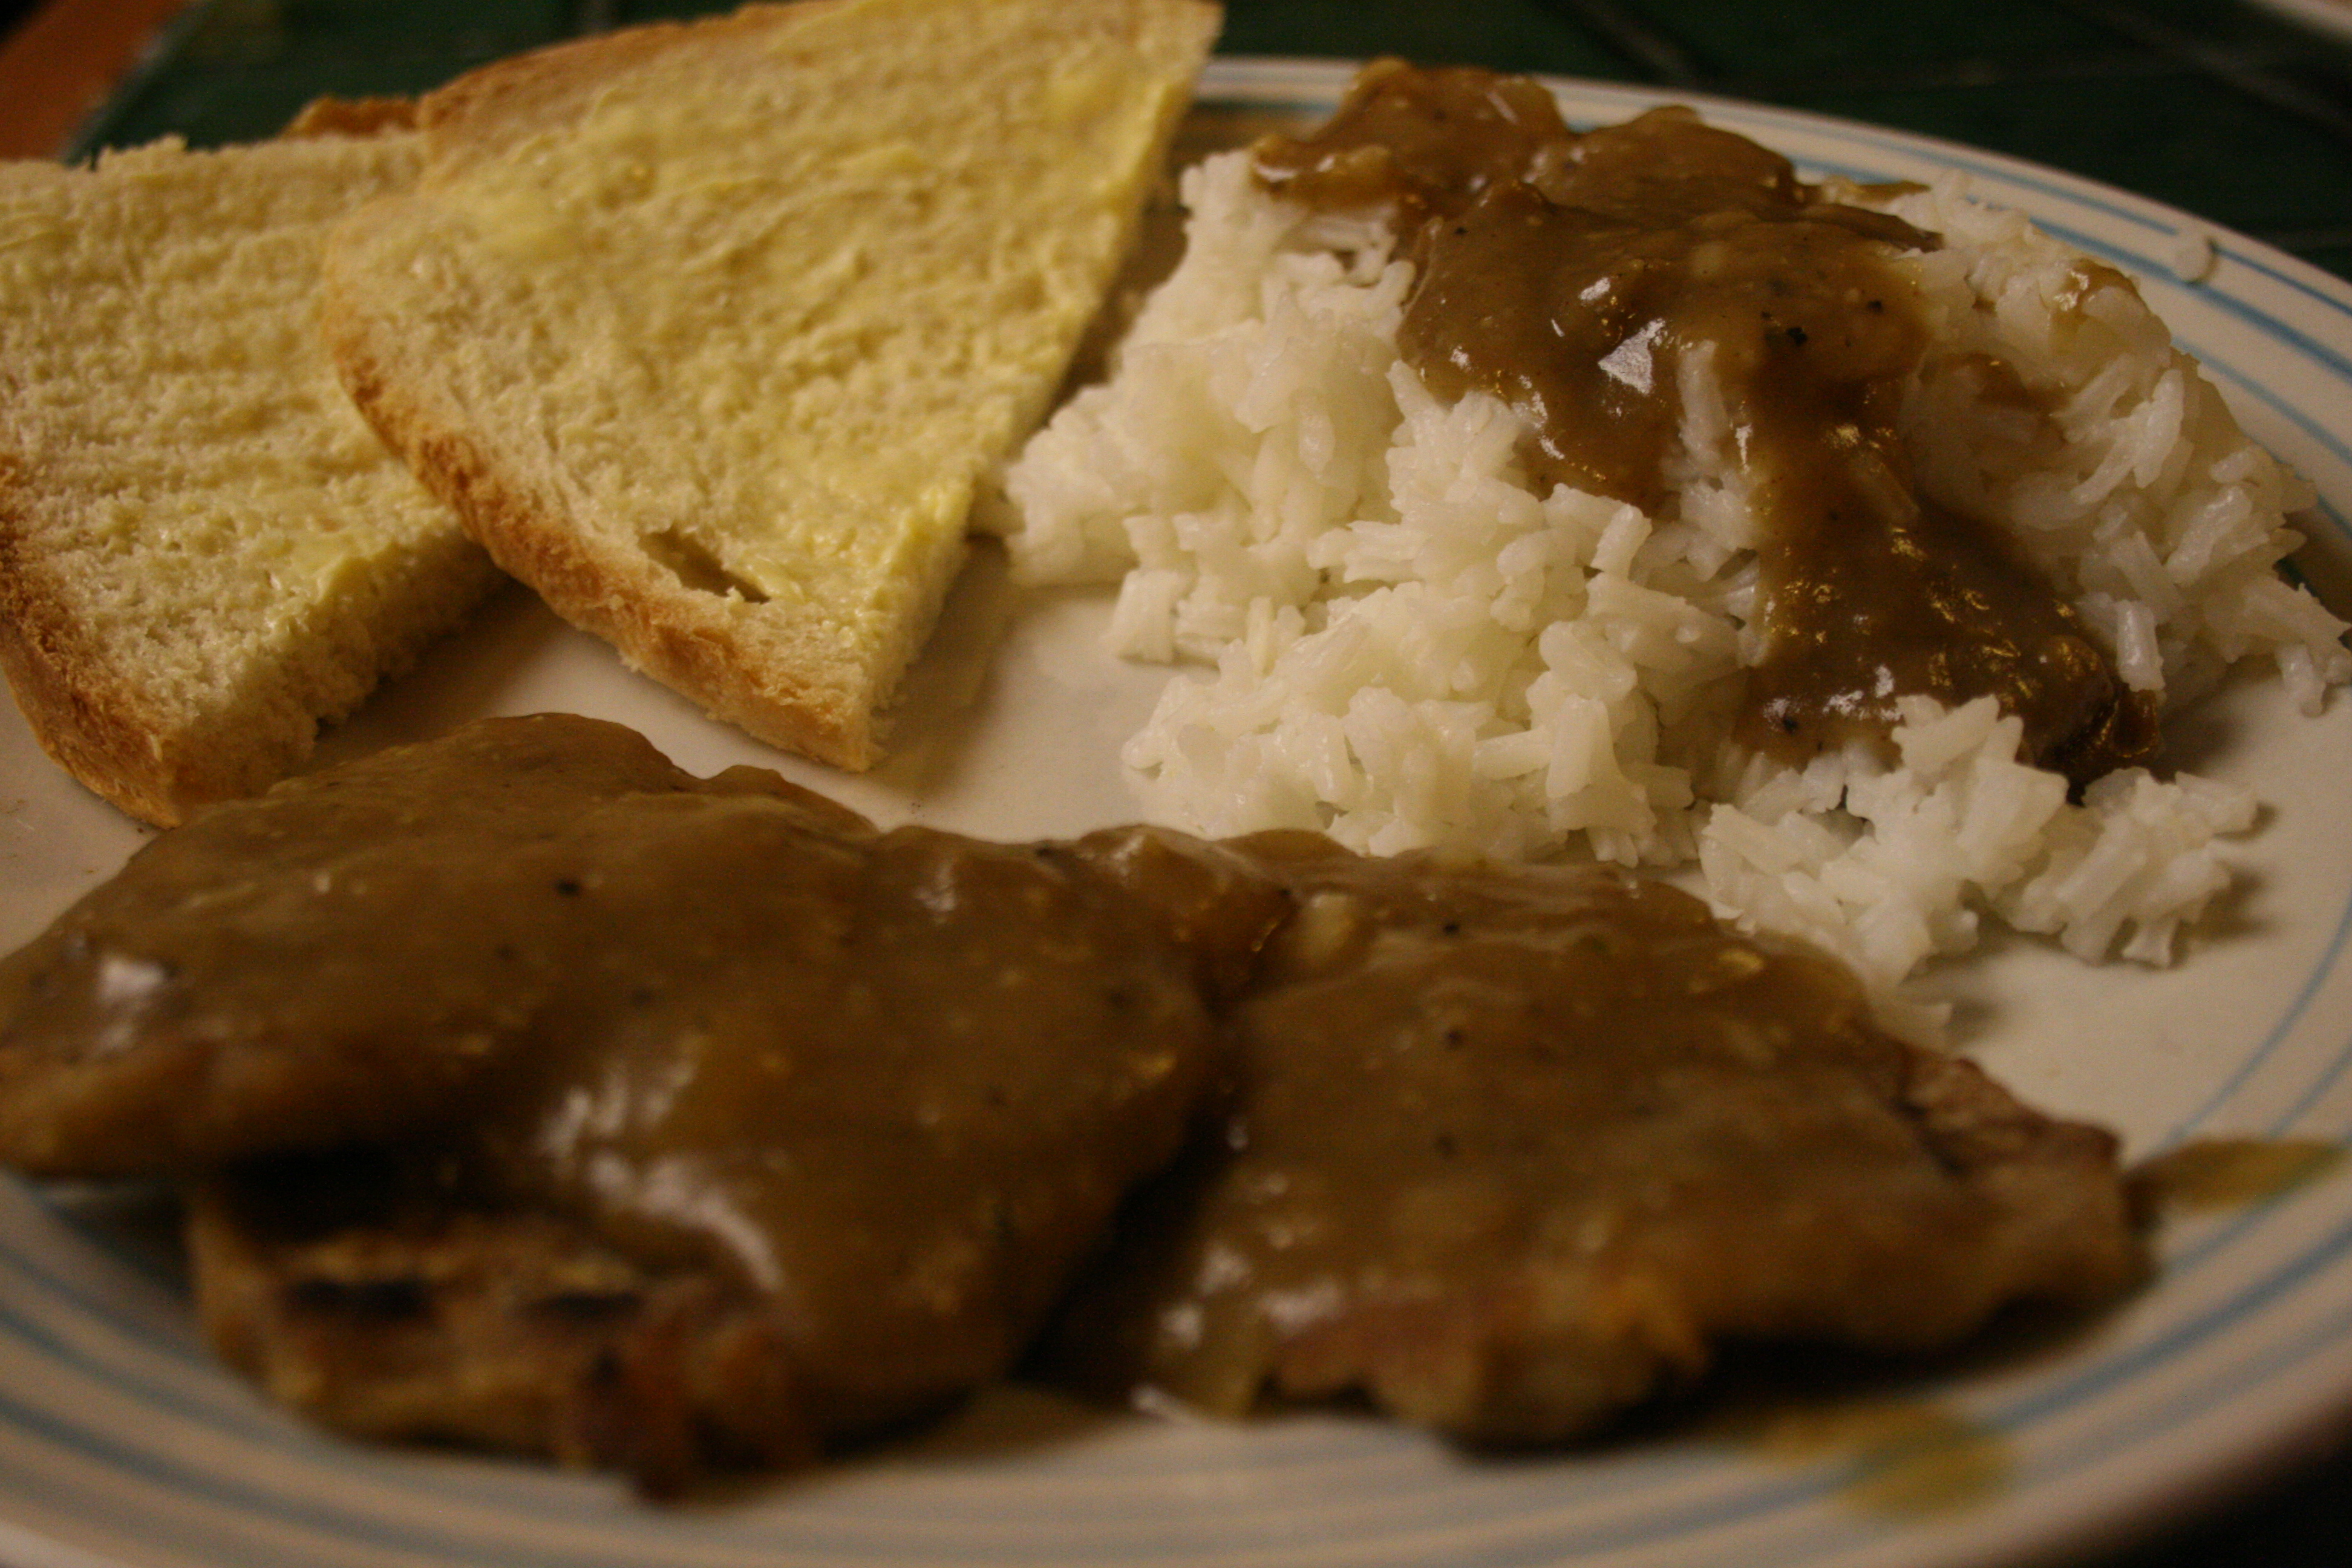 A delicious dinner of white flour and white rice covered in homemade gravy.